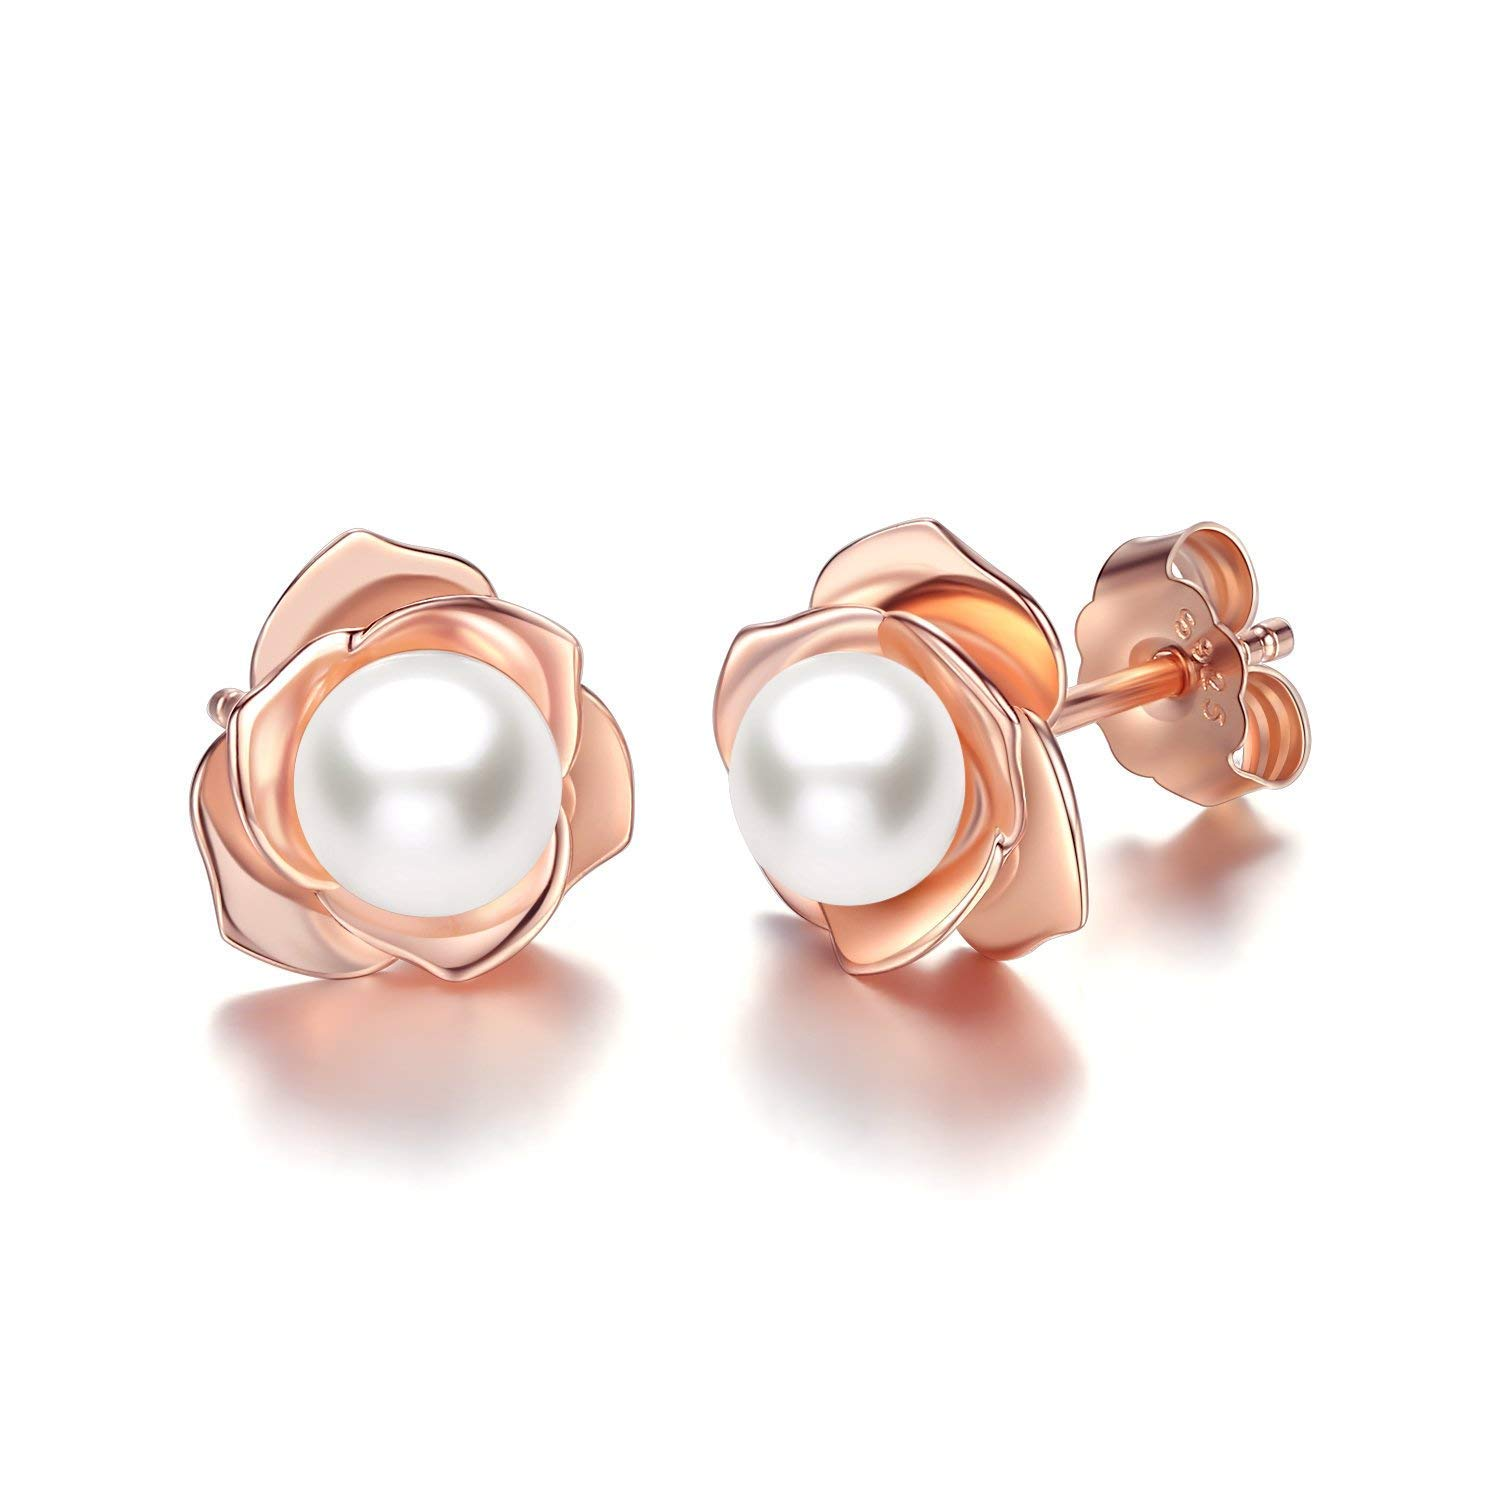 Rose Gold & Sterling Silver Rose Flower Freshwater Cultured Pearl Earrings Studs for Women Girls JORA SW-1007618